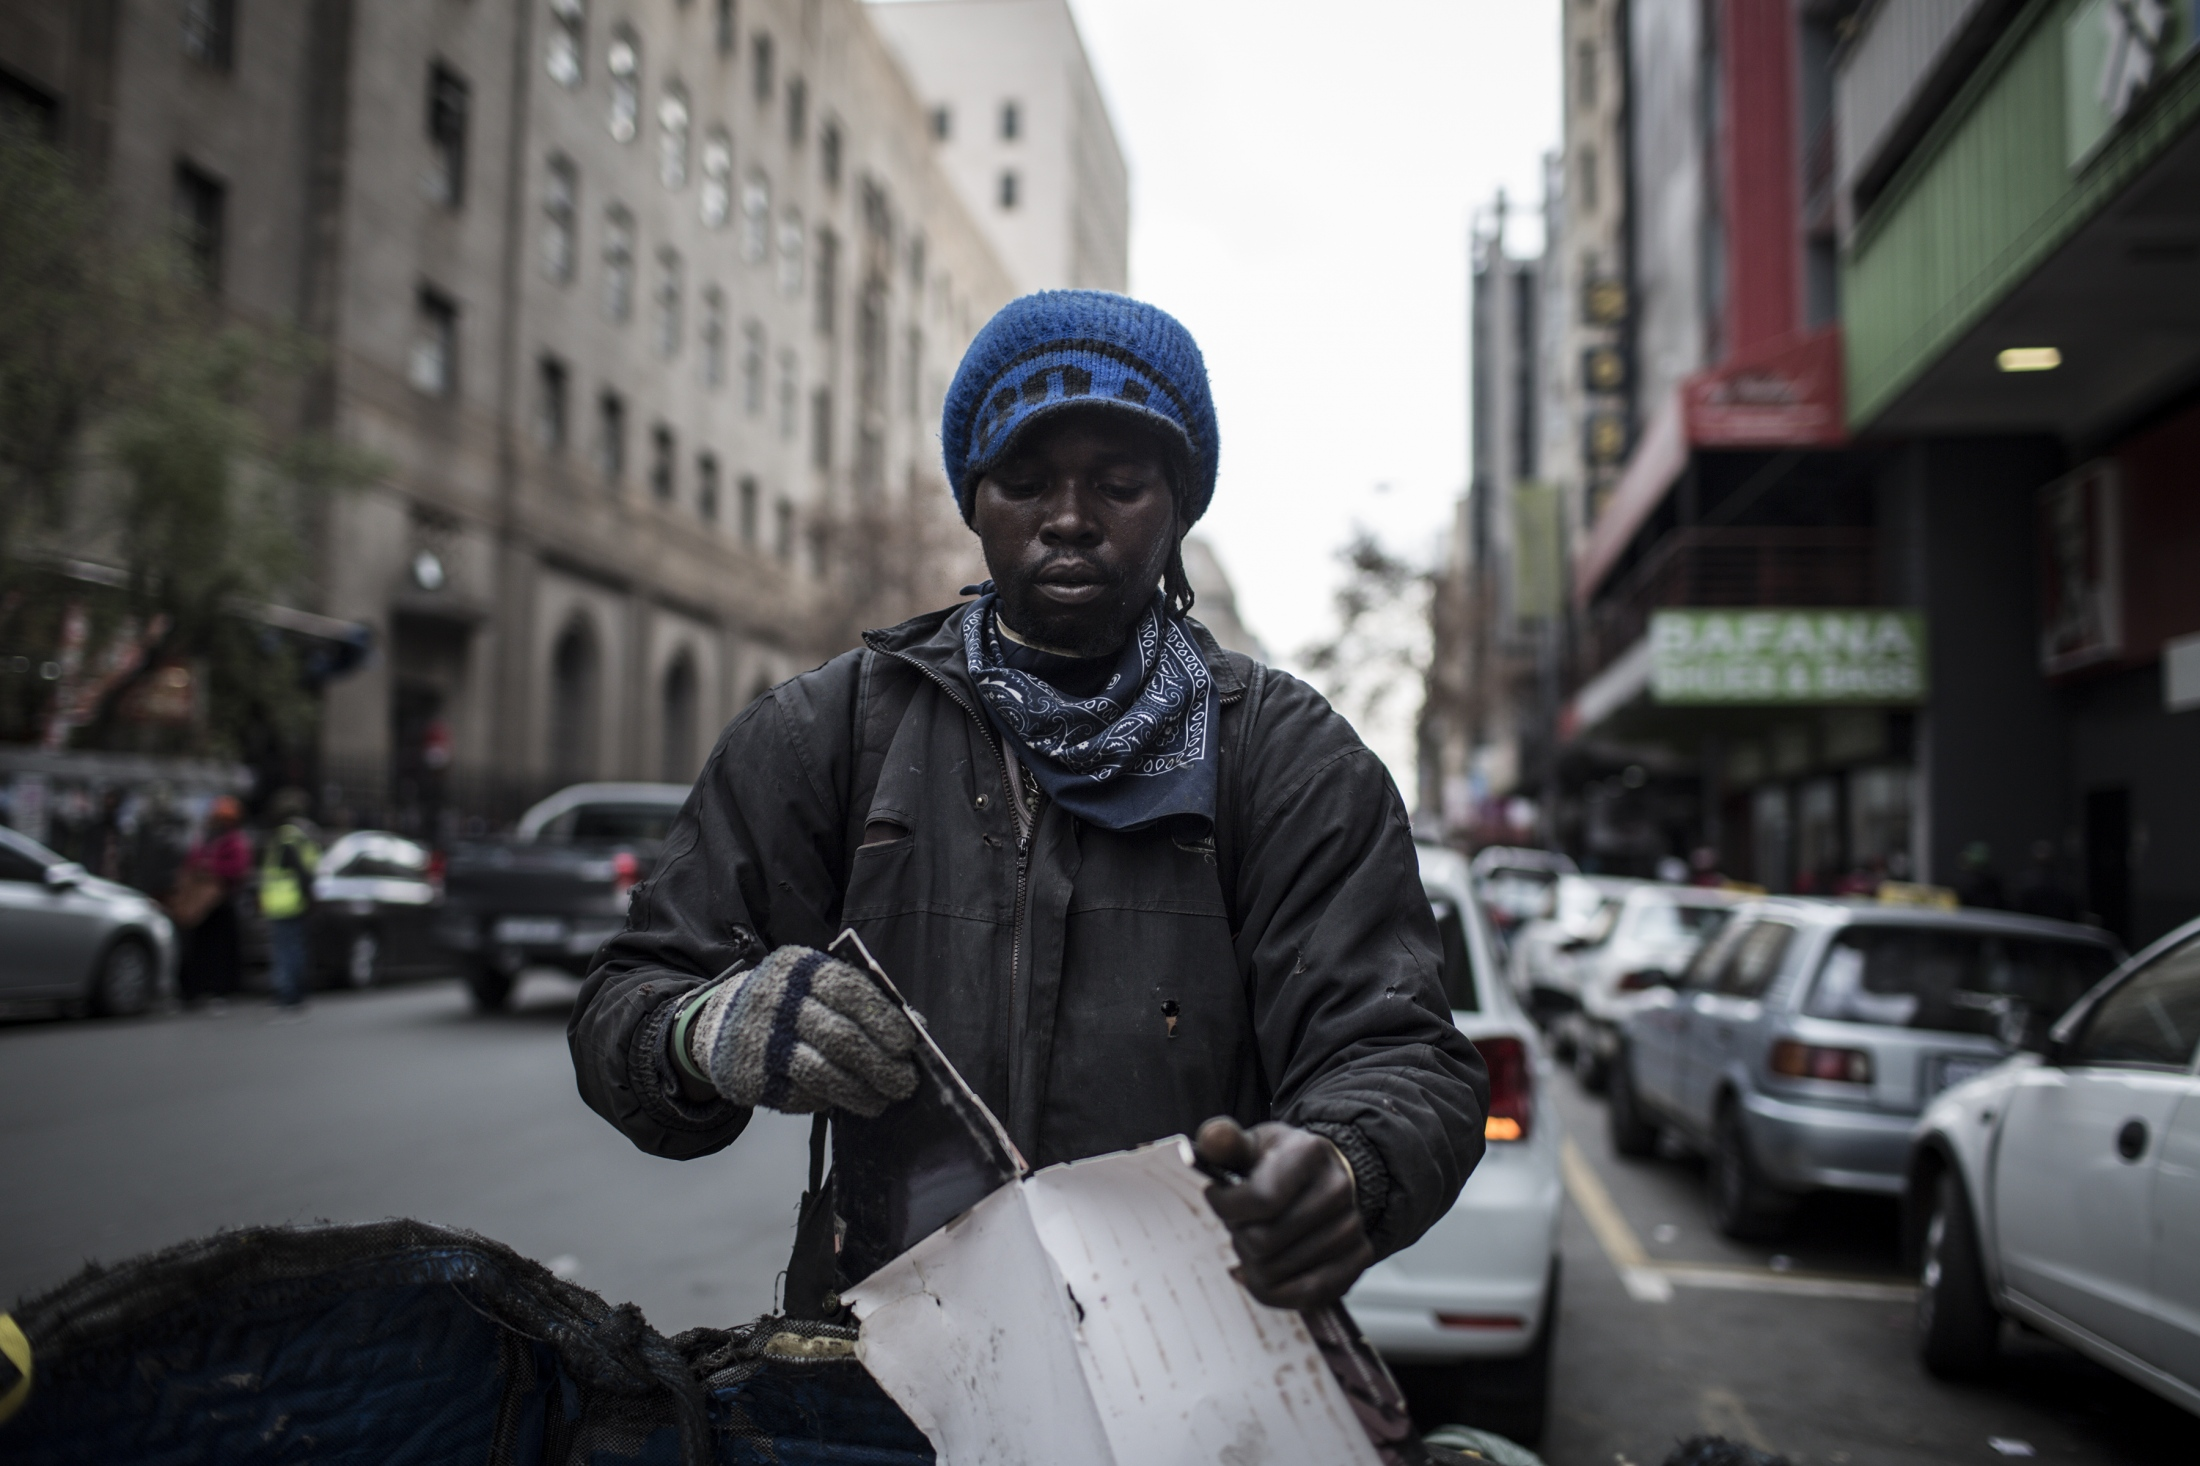 Oscar Maile, 29, collects waste in Johannesburg city on June 27, 2018.